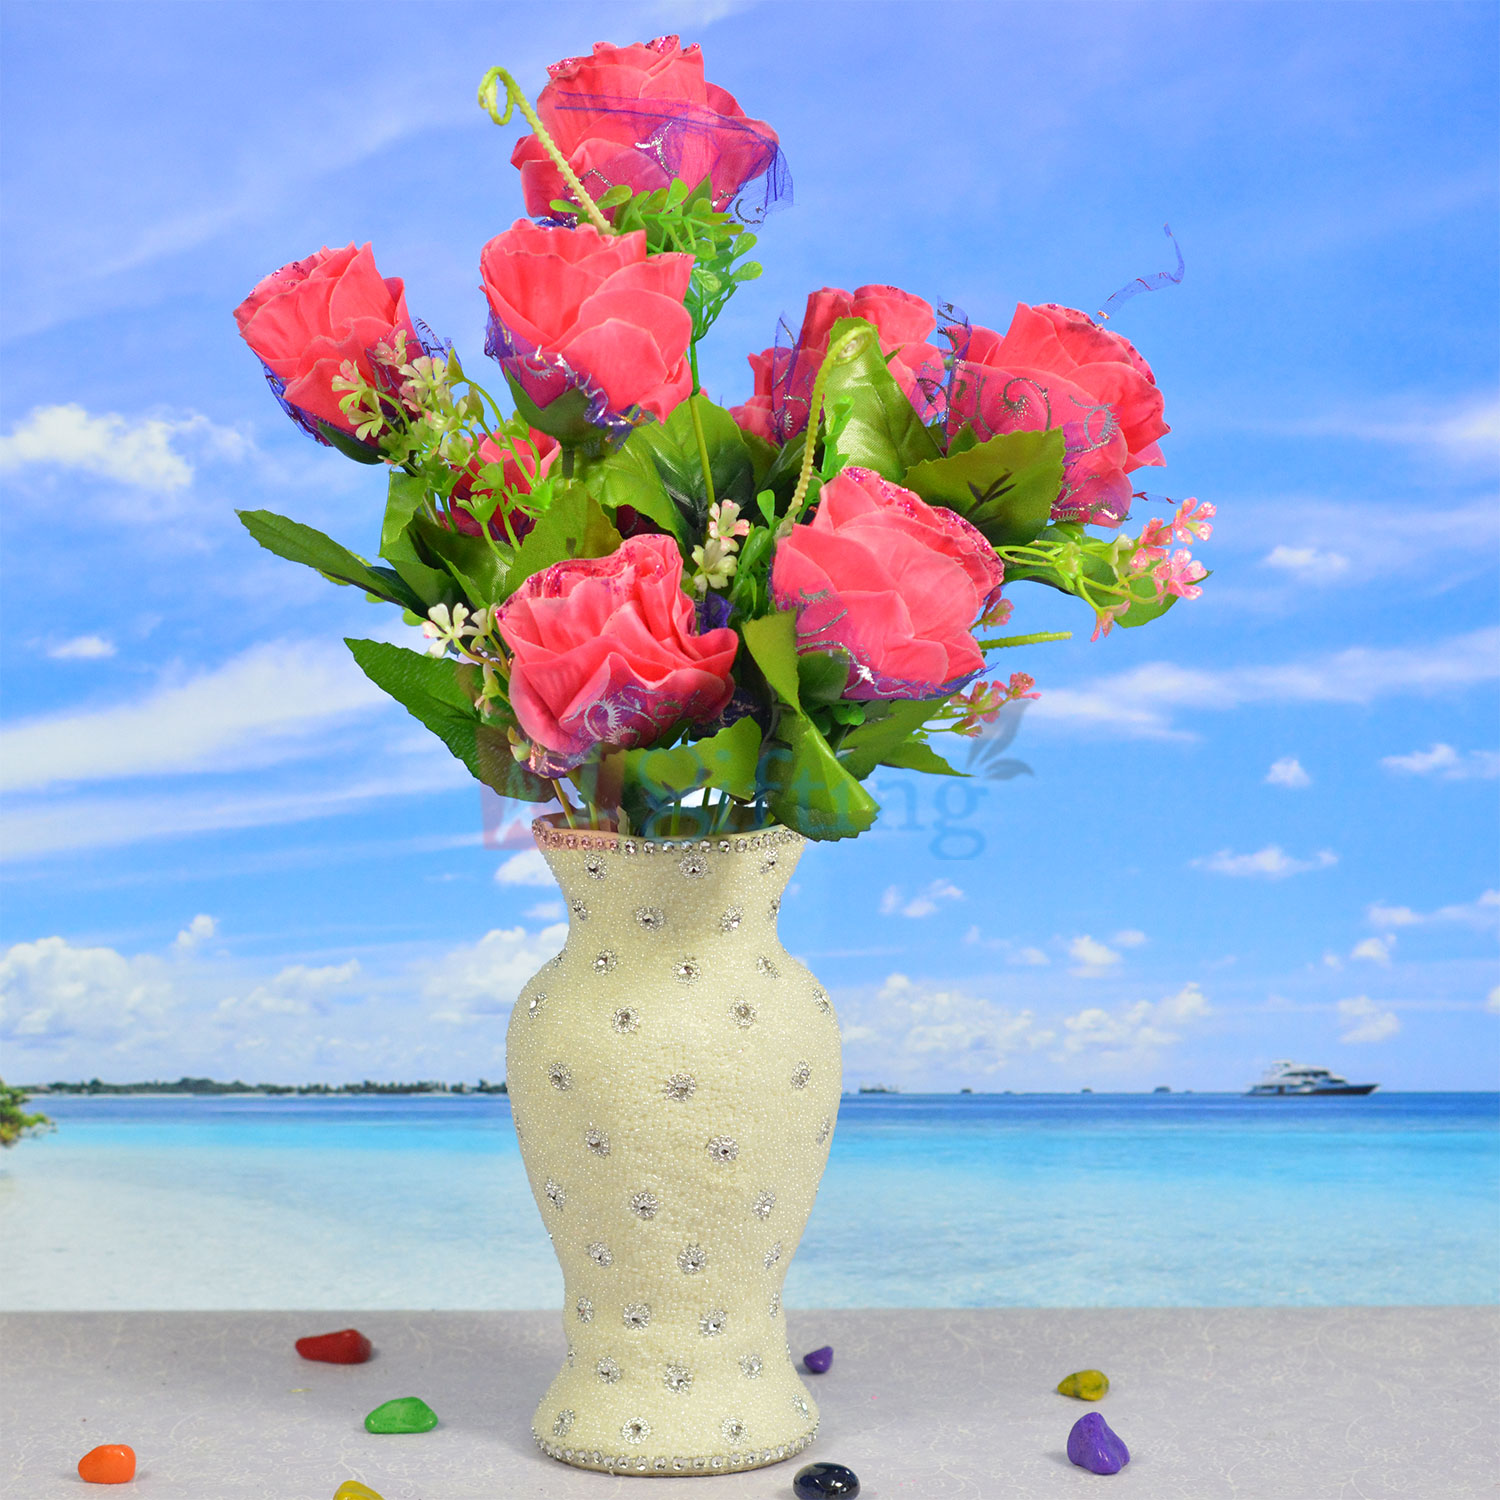 Amazing Roses Flower Bouquet with Pot